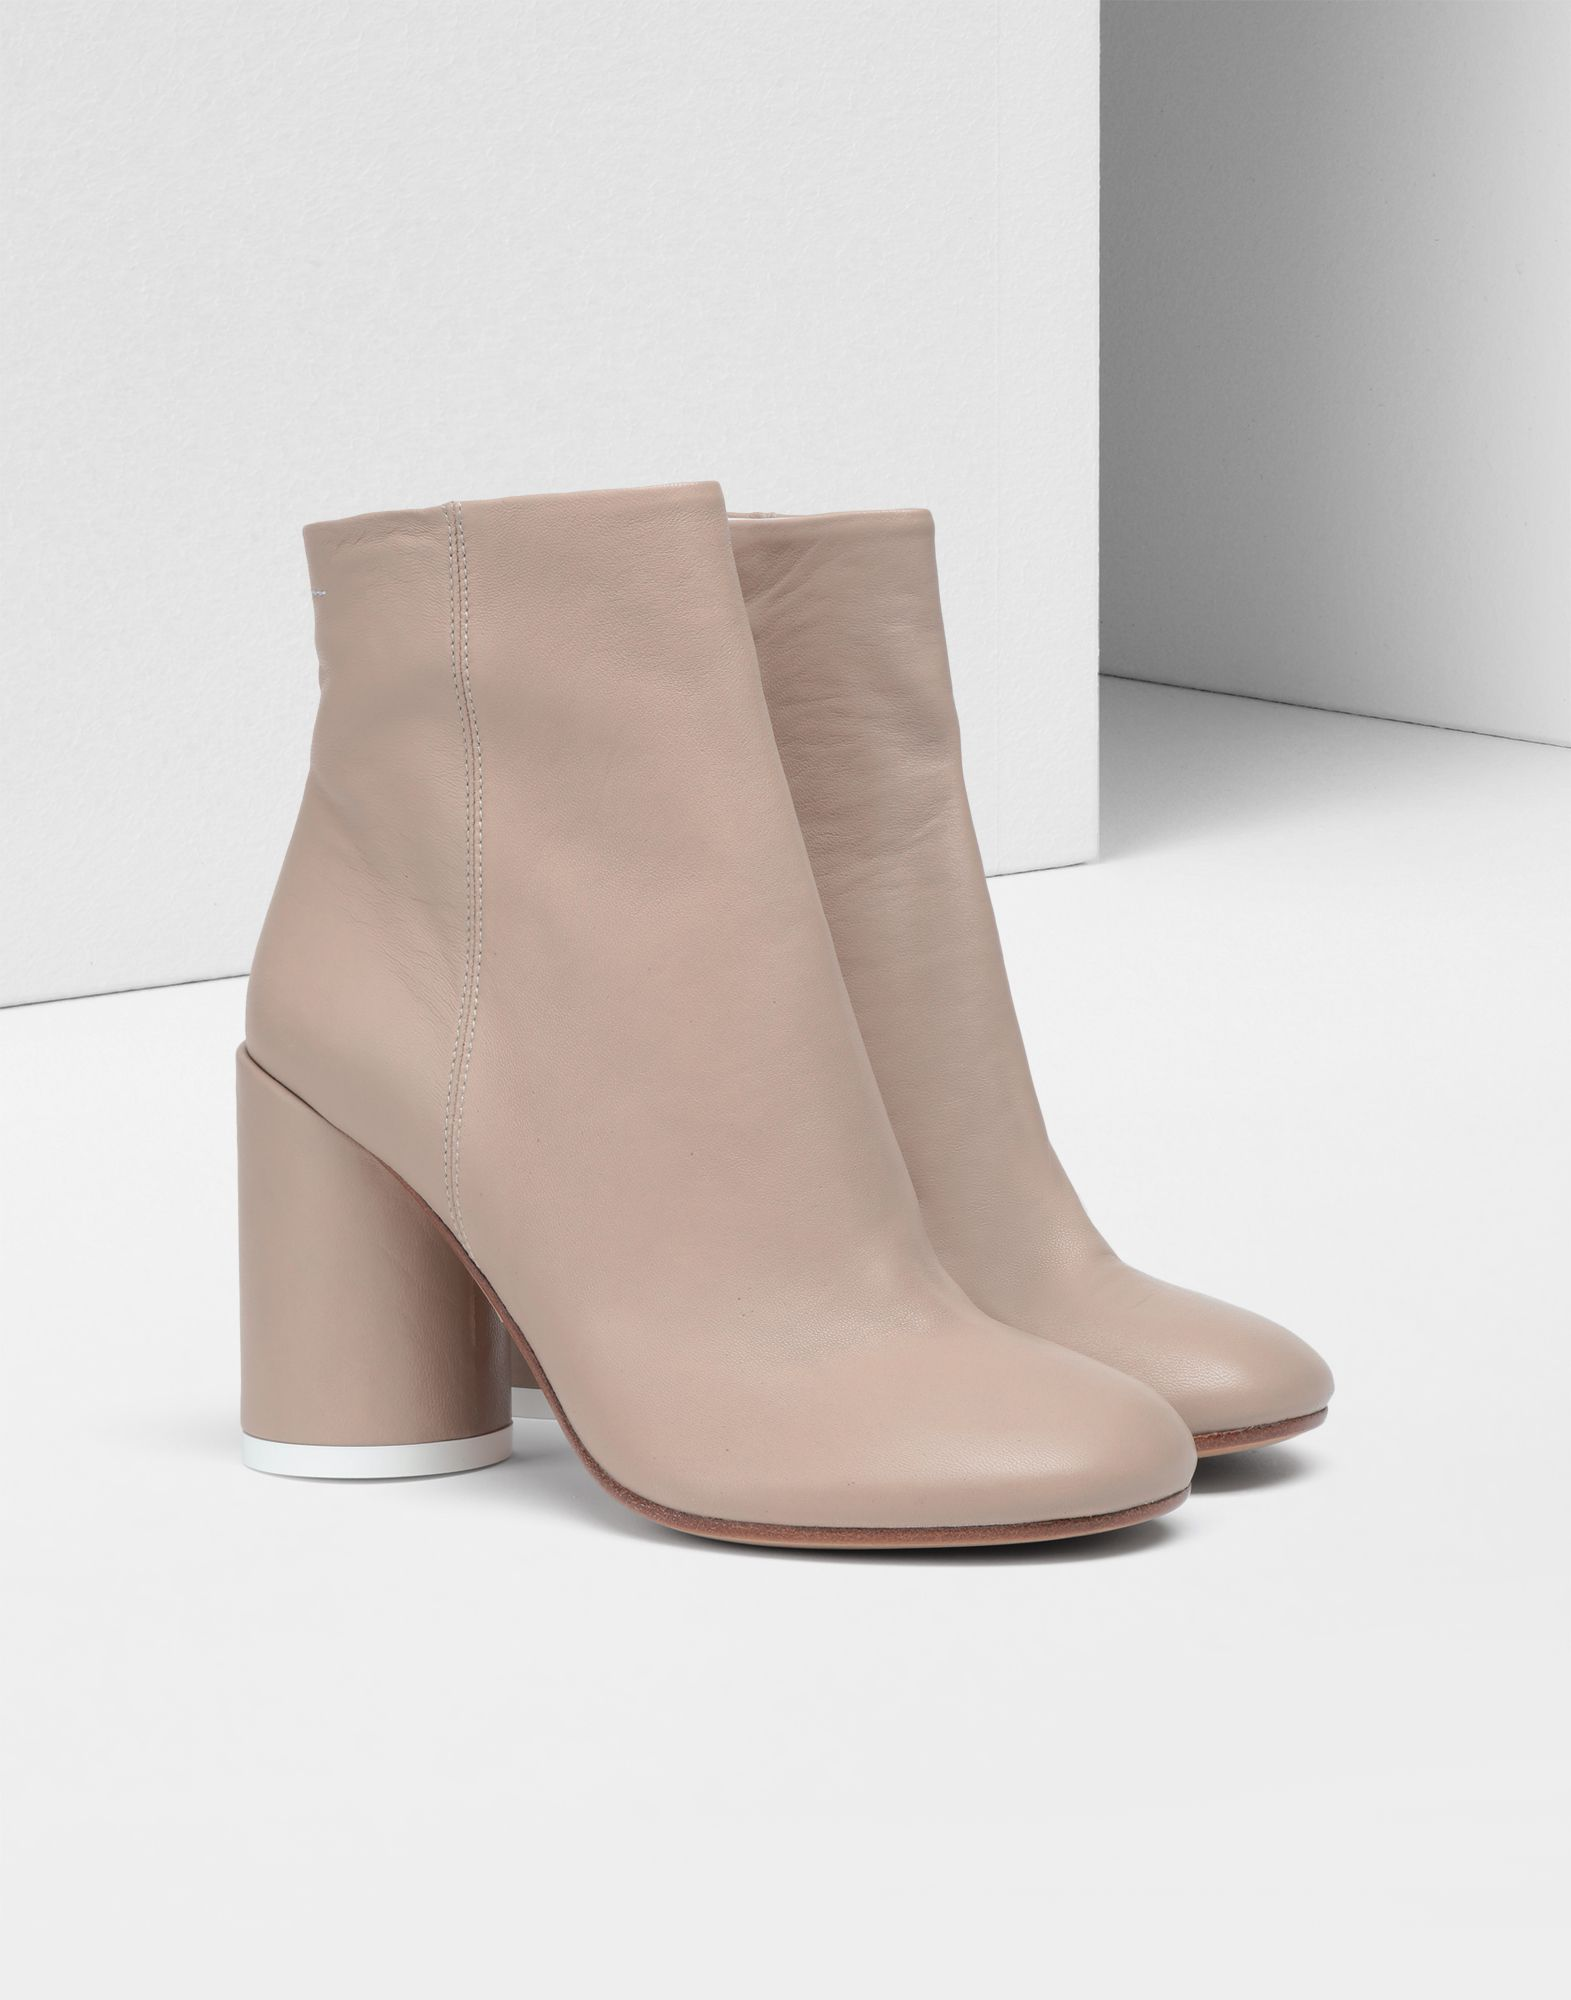 size: 37,  37.5,  38.5,  39